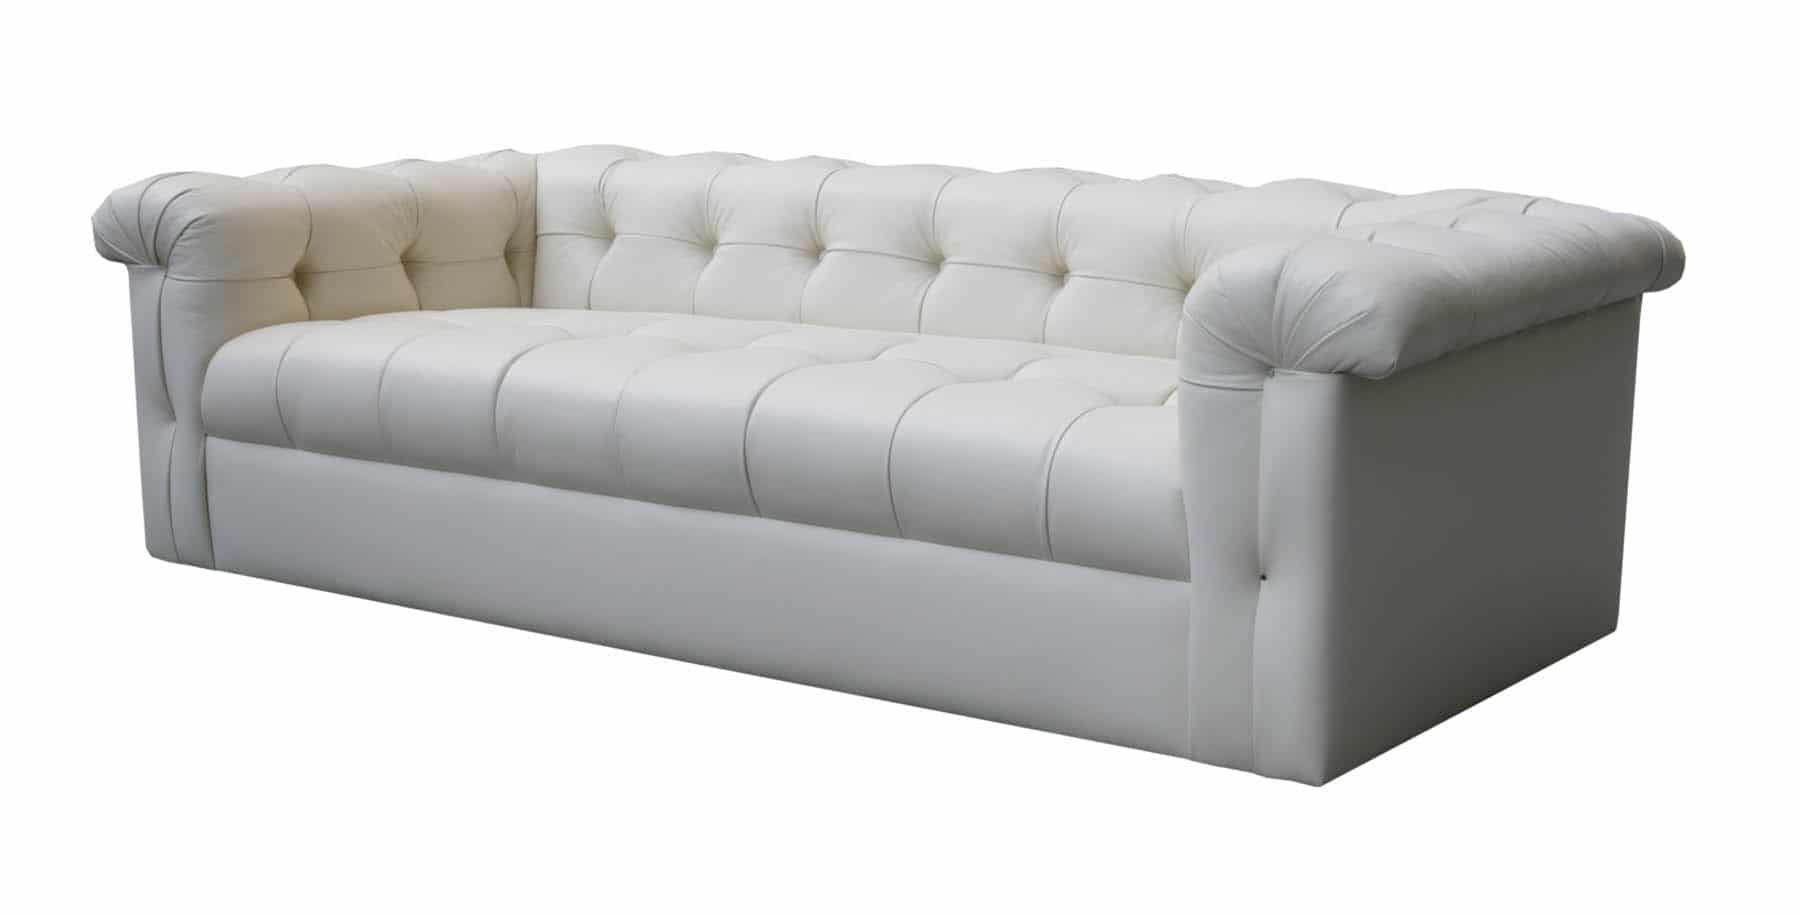 edward wormley dunbar six foot tufted leather sofa todd merrill studio. Black Bedroom Furniture Sets. Home Design Ideas